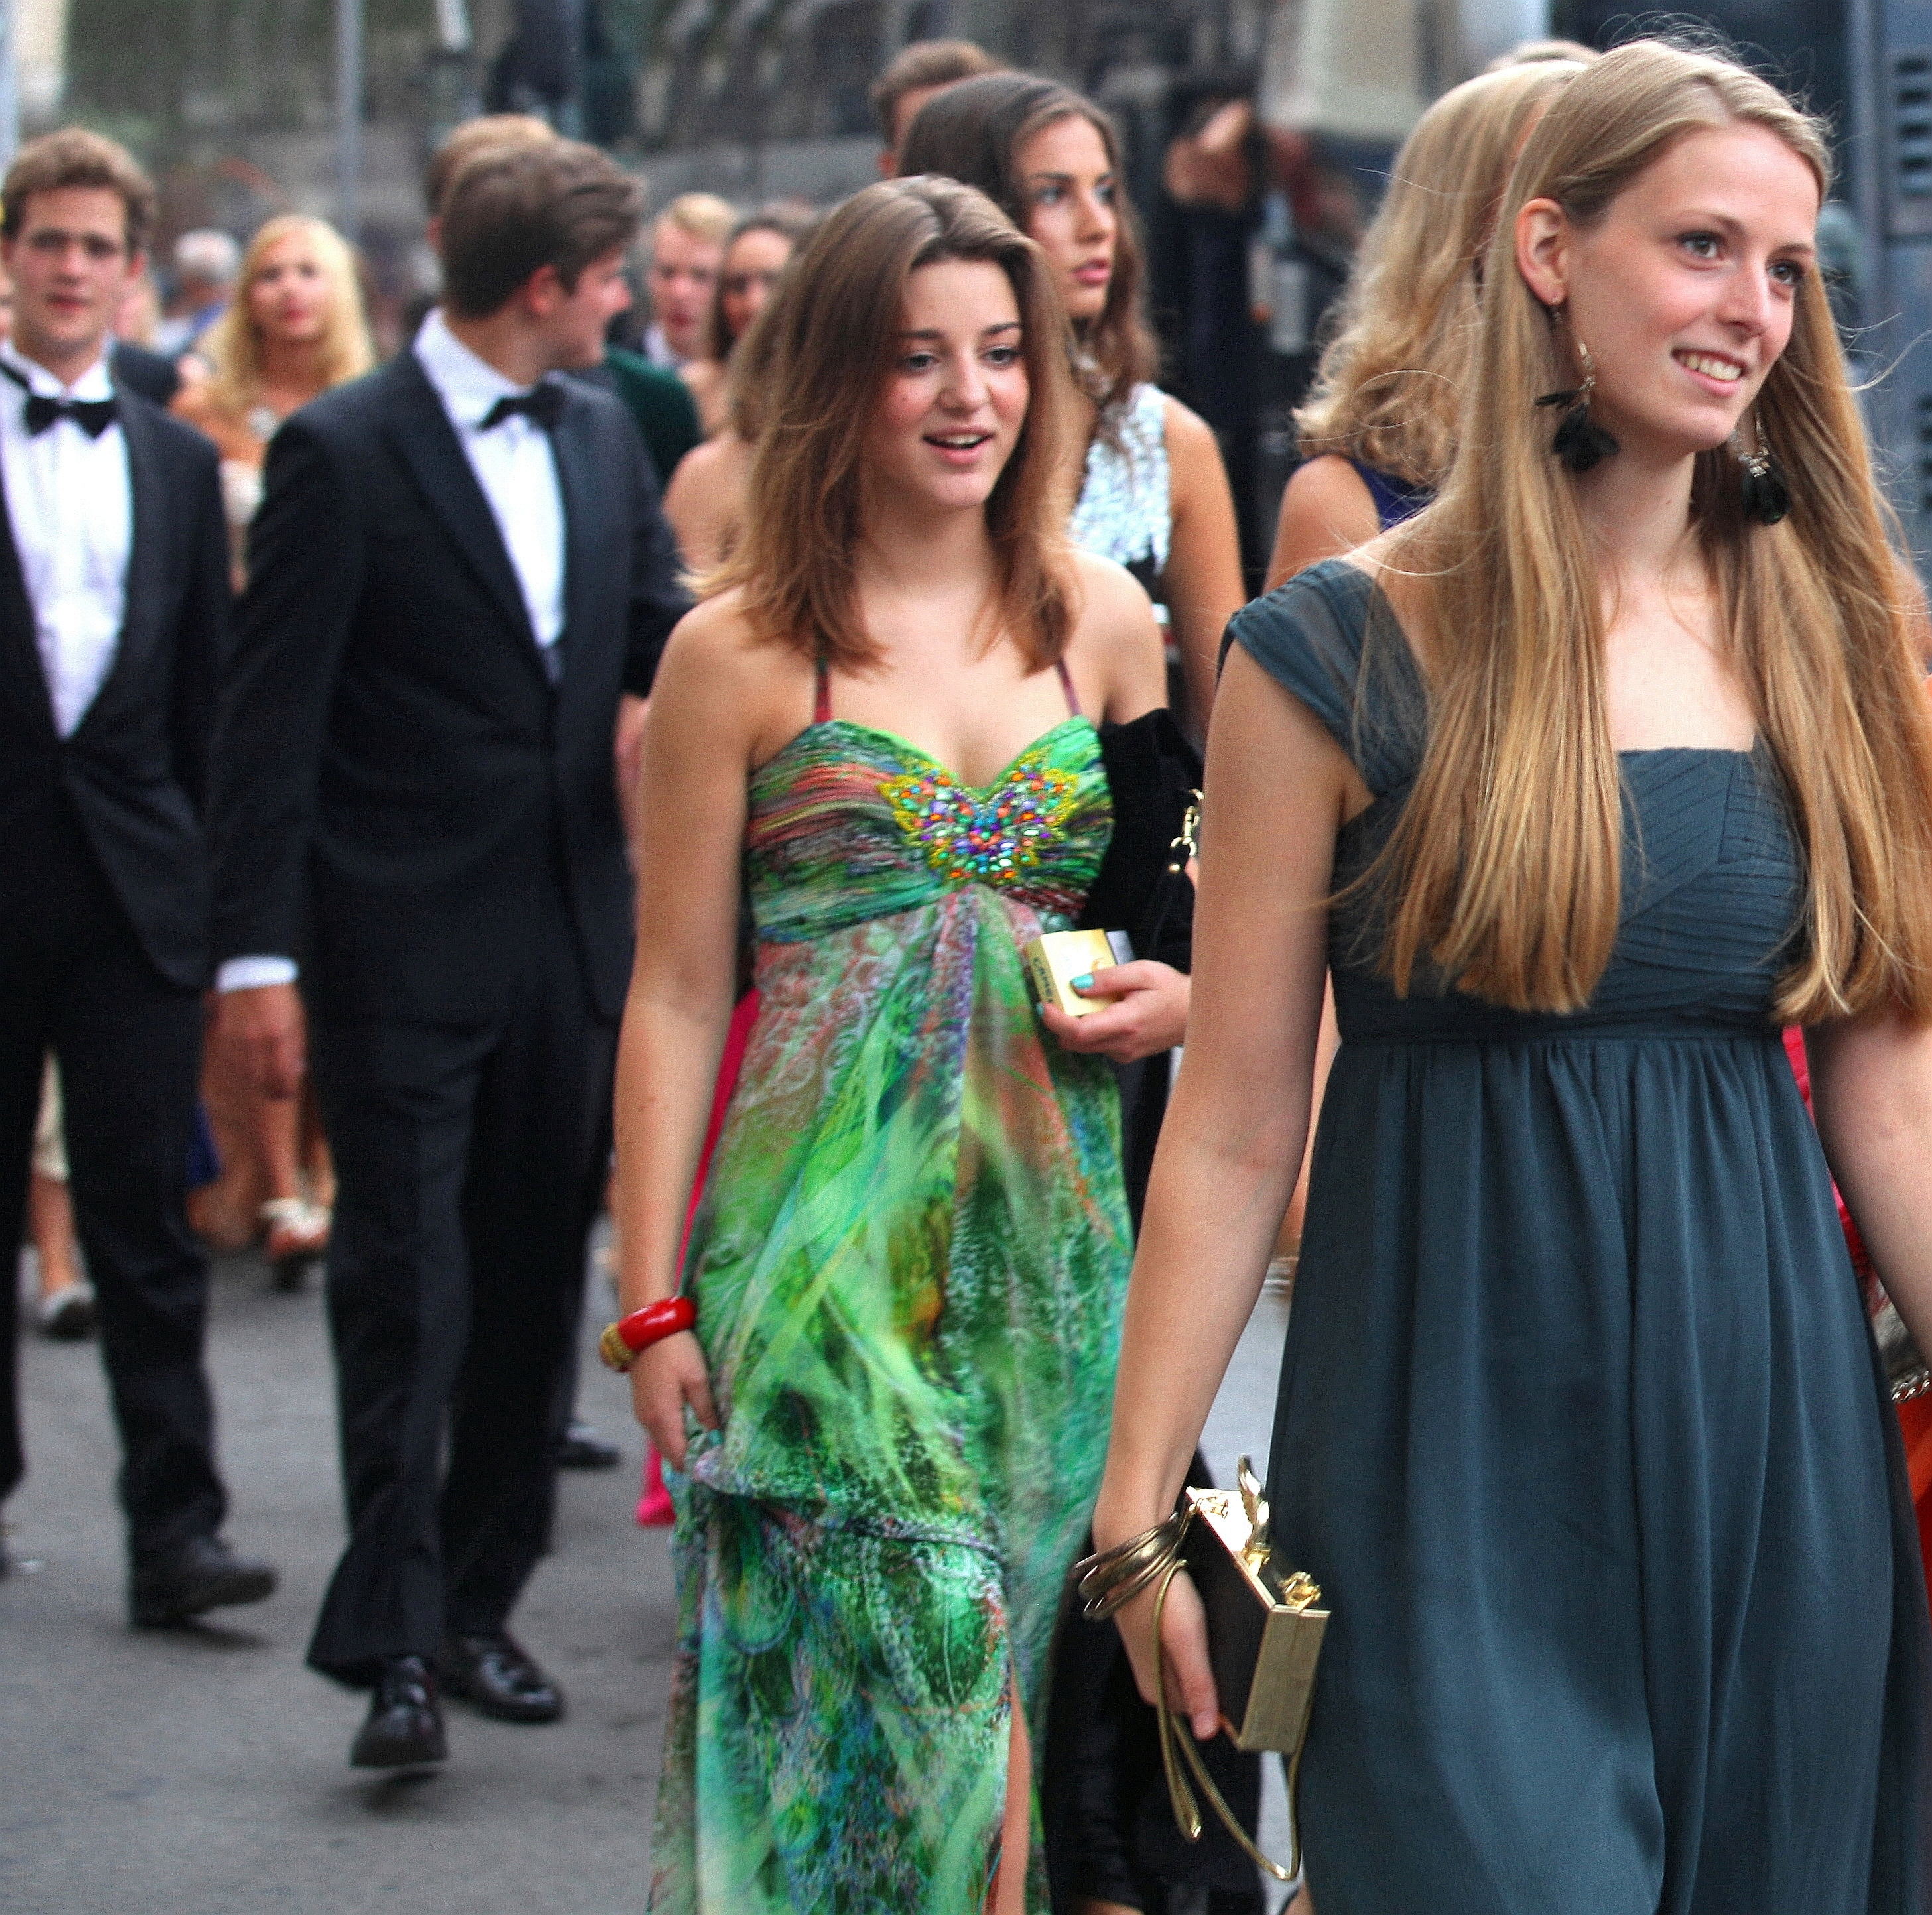 girls in evening dresses, photographed in August 2013, photo 2/11